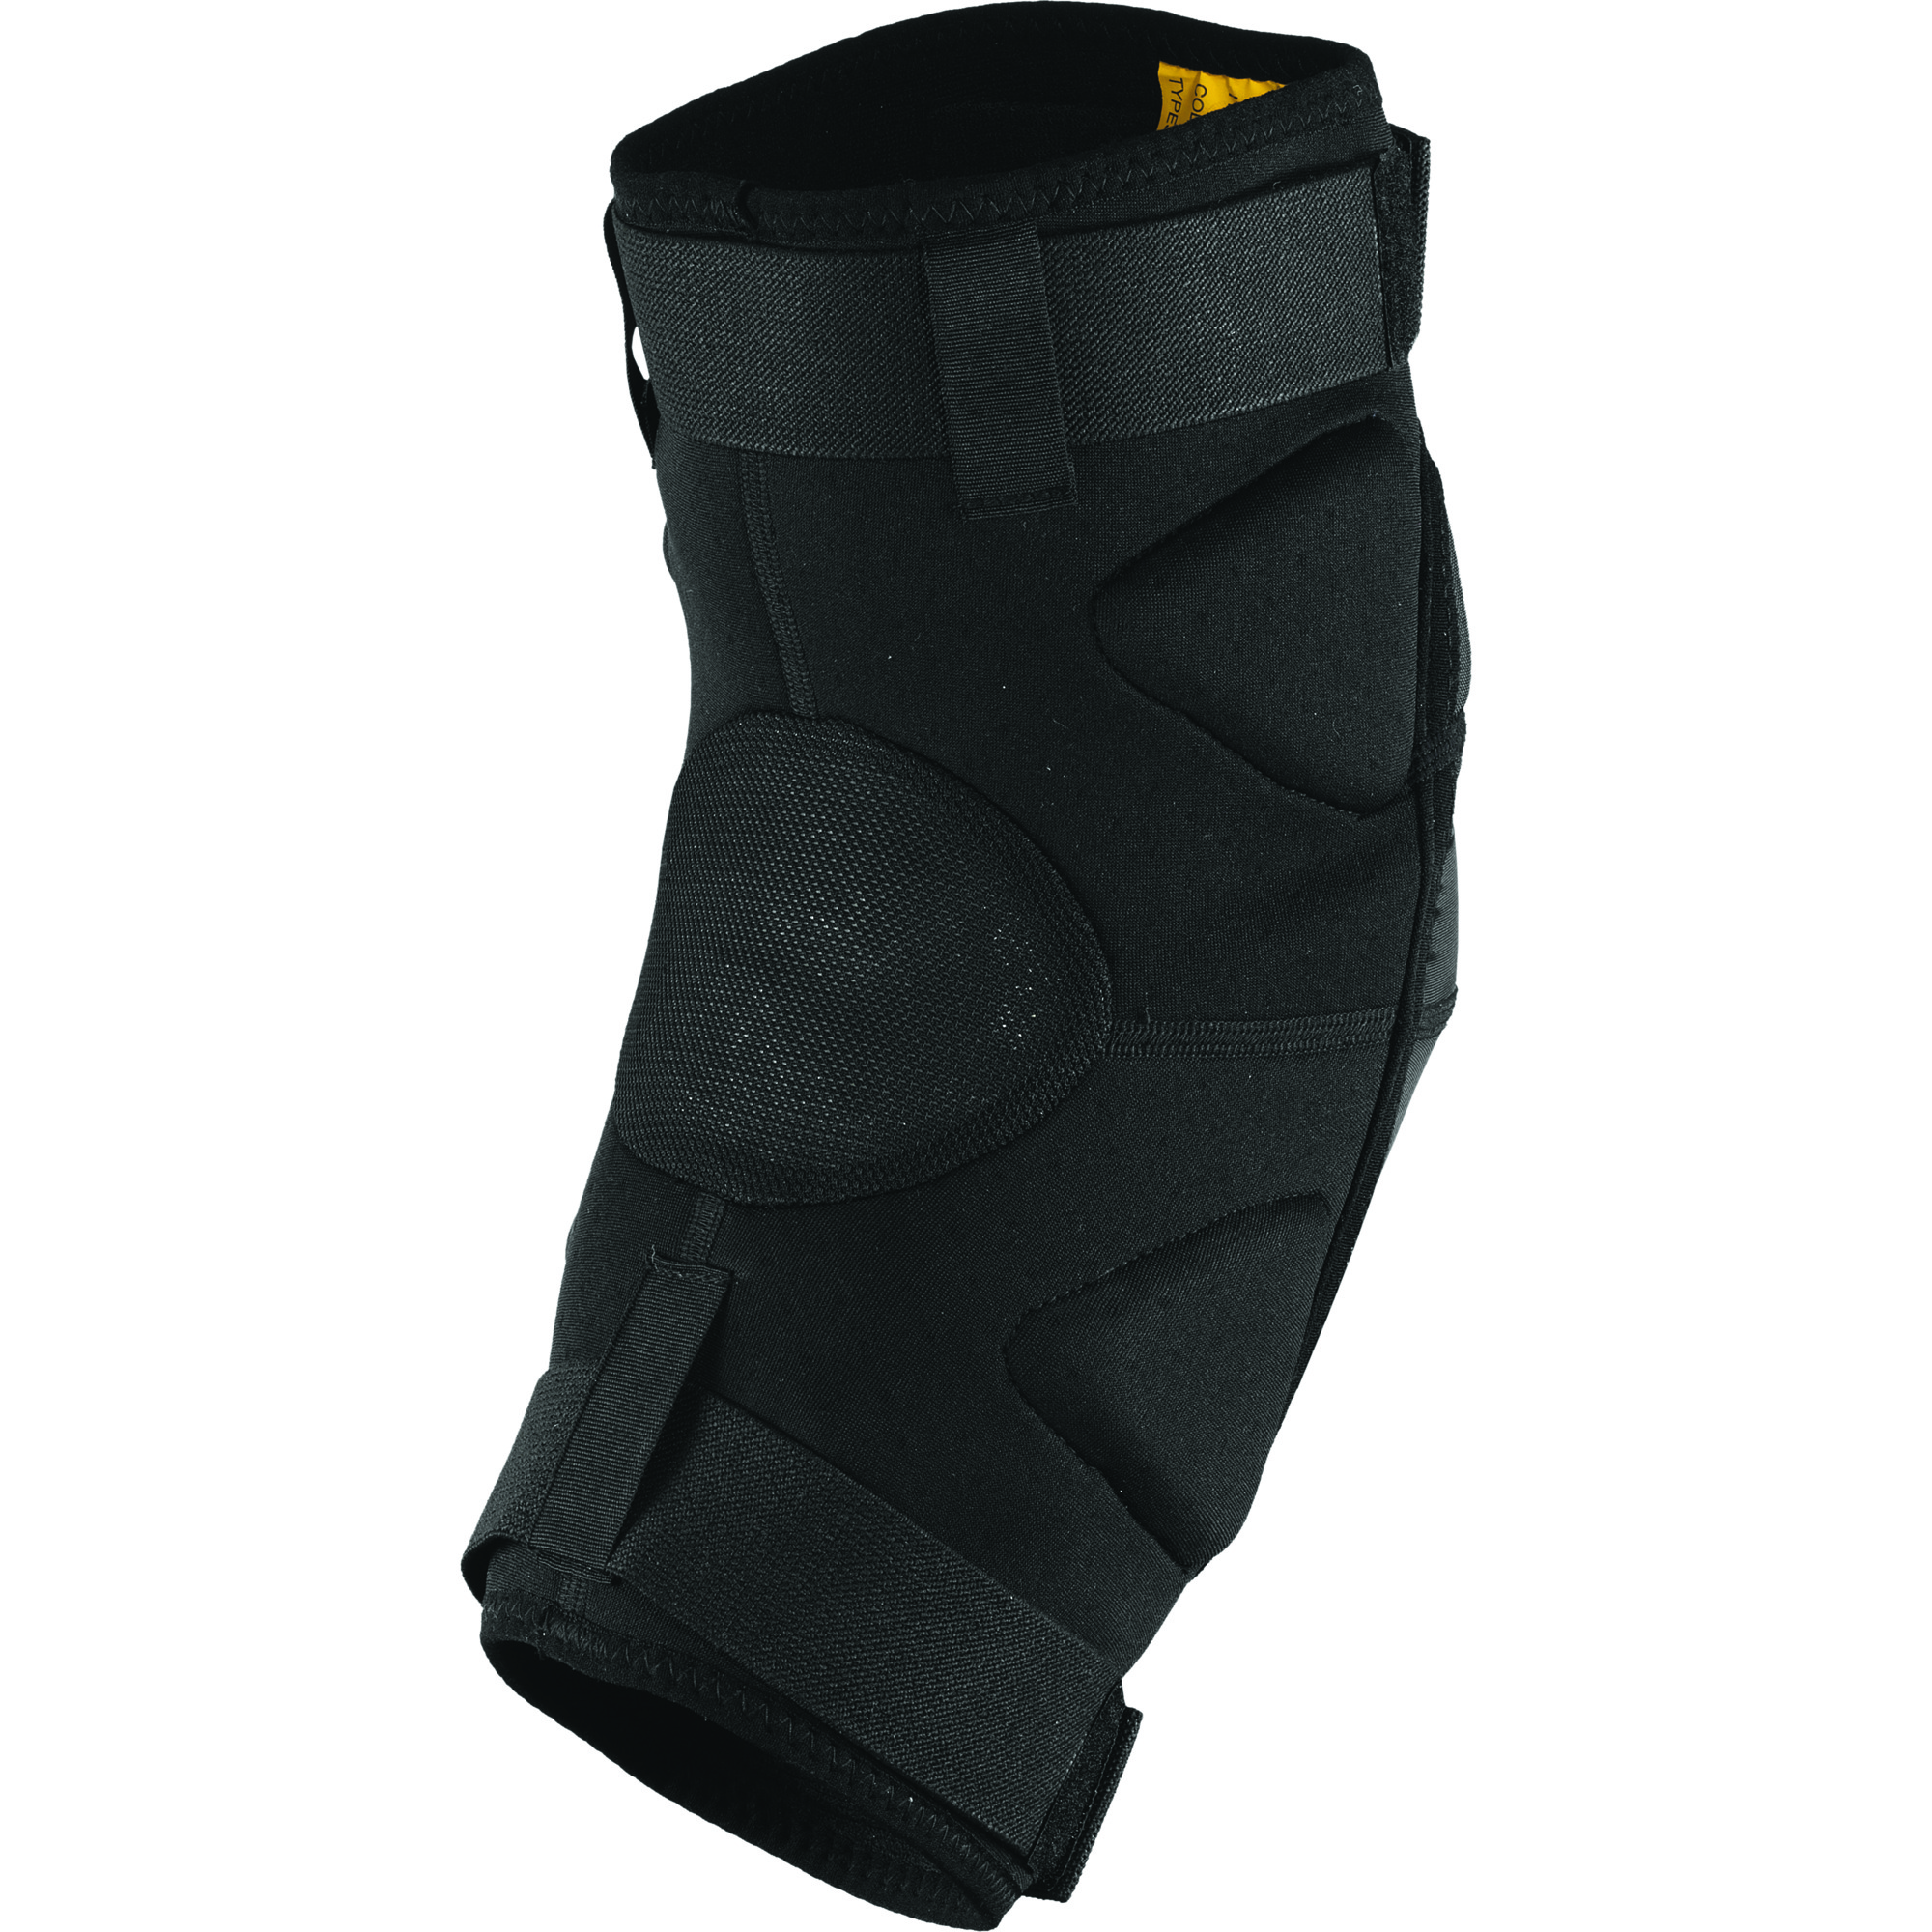 SCOTT Rocket II Knee Guards